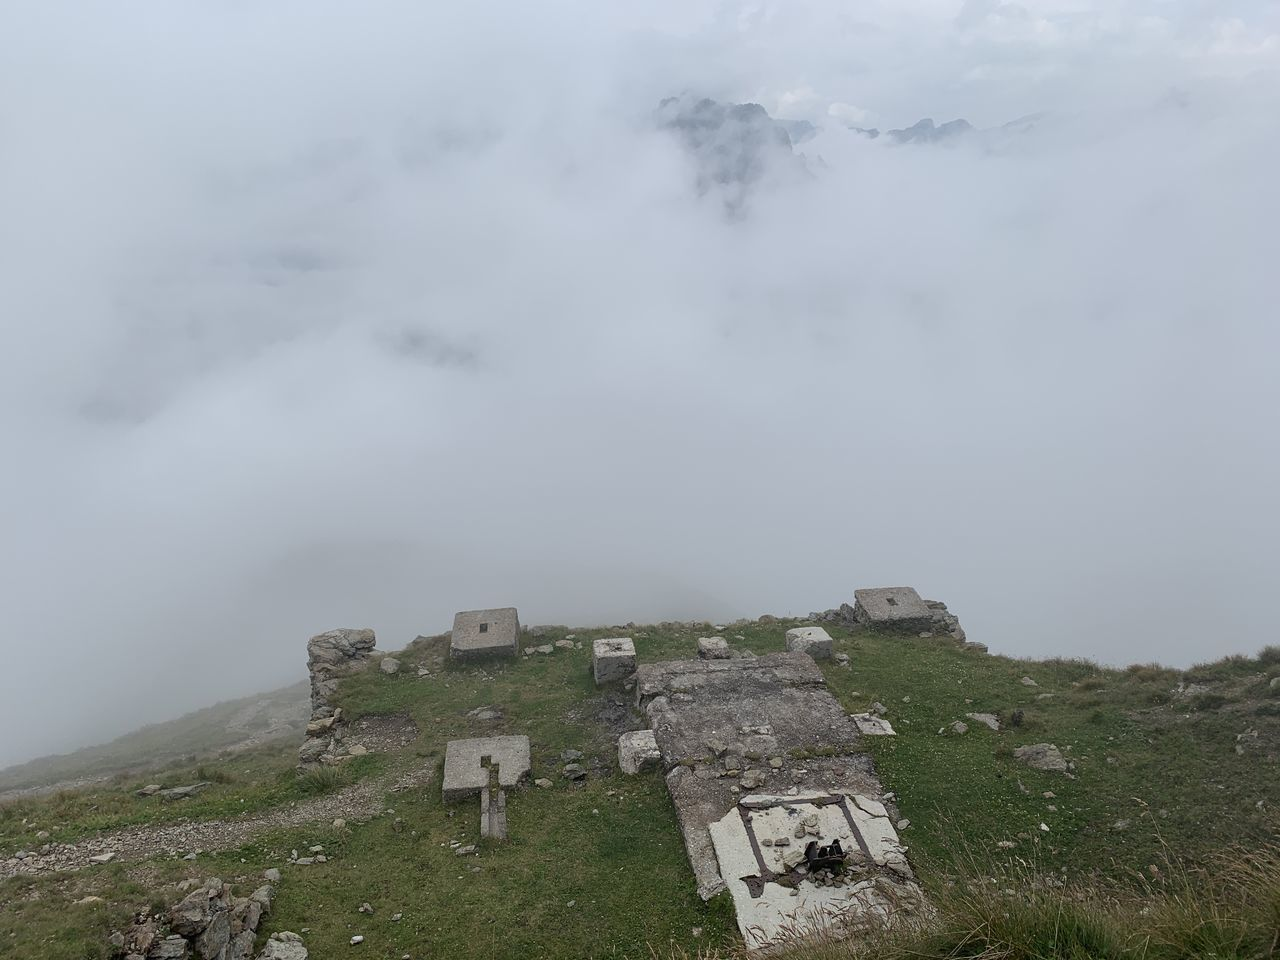 history, sky, architecture, the past, fog, ancient, built structure, nature, cloud - sky, mountain, building exterior, plant, day, no people, land, old ruin, environment, outdoors, tranquility, ancient civilization, ruined